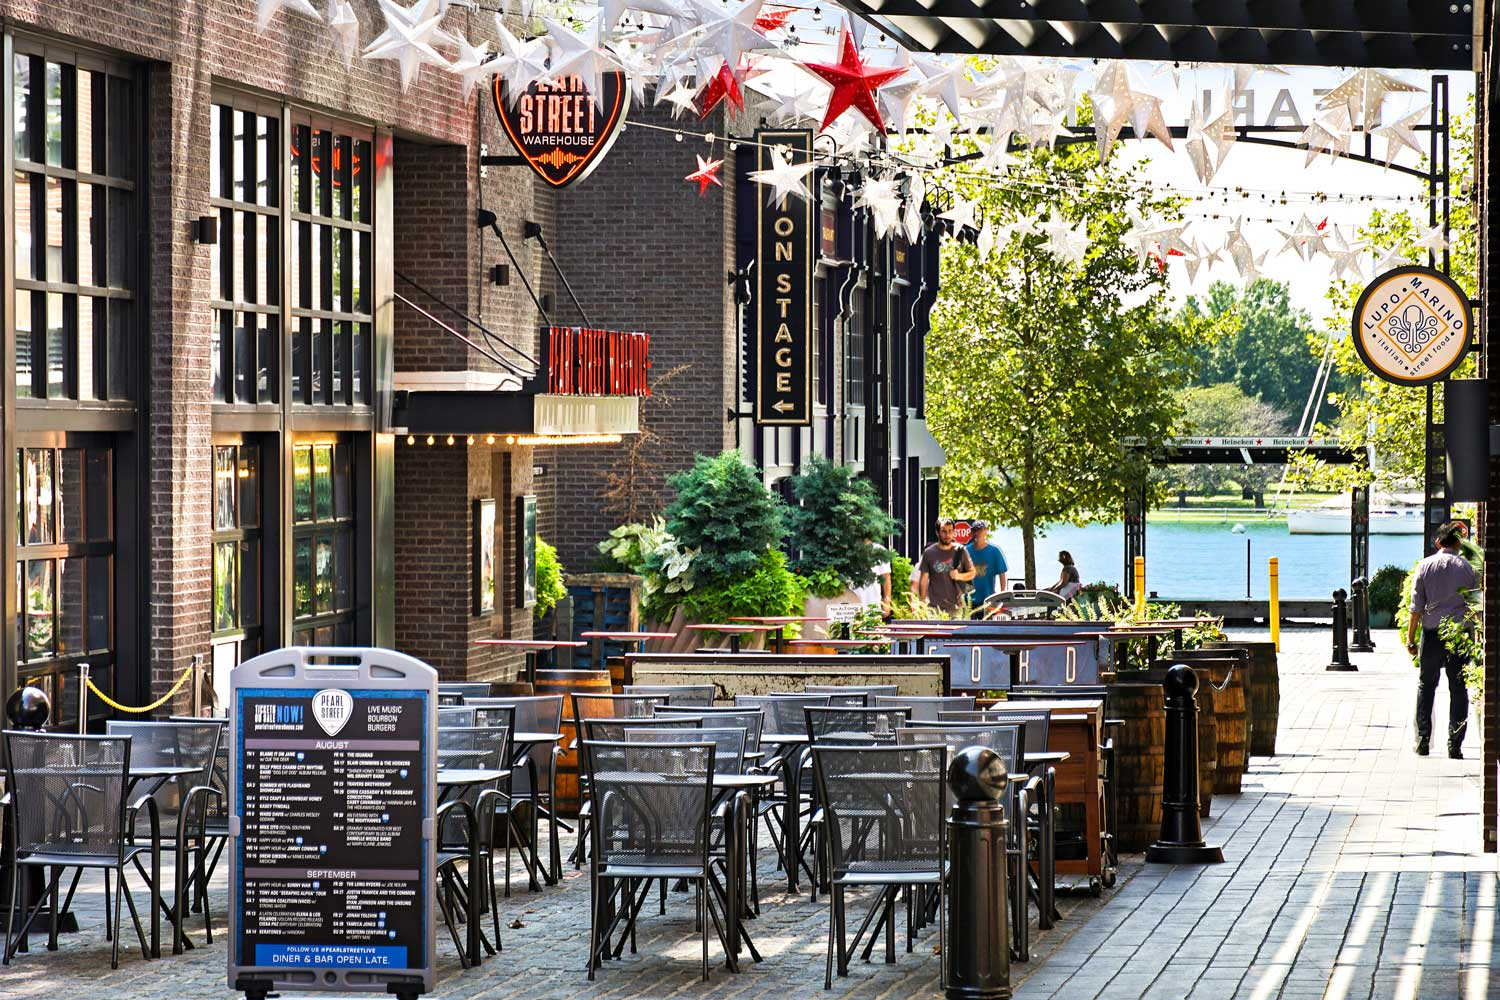 15 minutes to dining at The Wharf DC